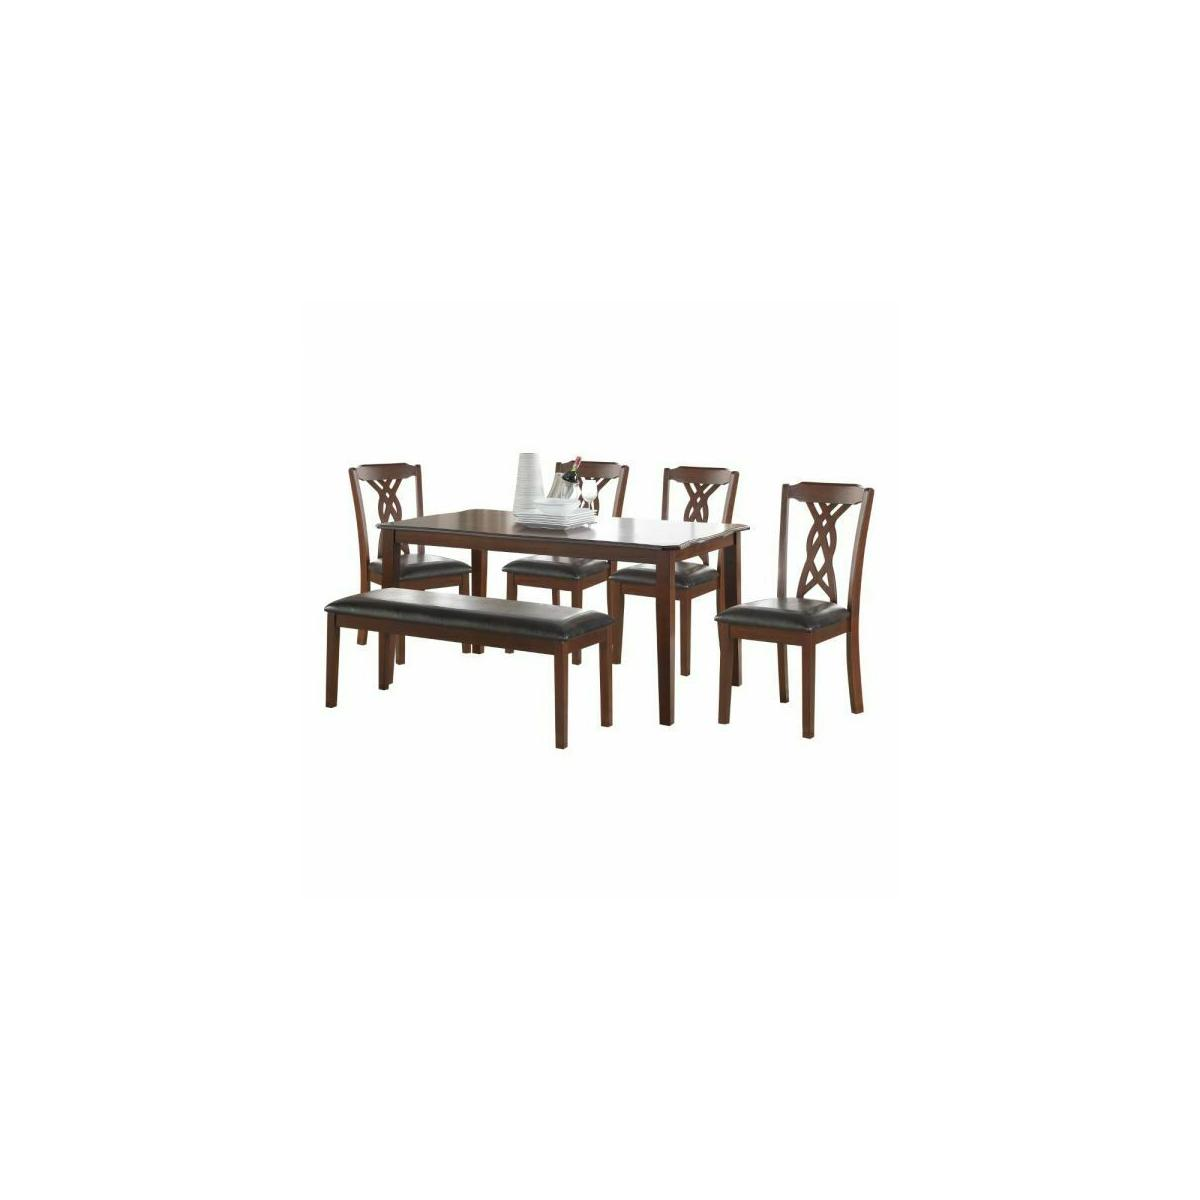 ACME Ingeberg 6Pc Pack Dining Set - 71840 - Black PU & Espresso